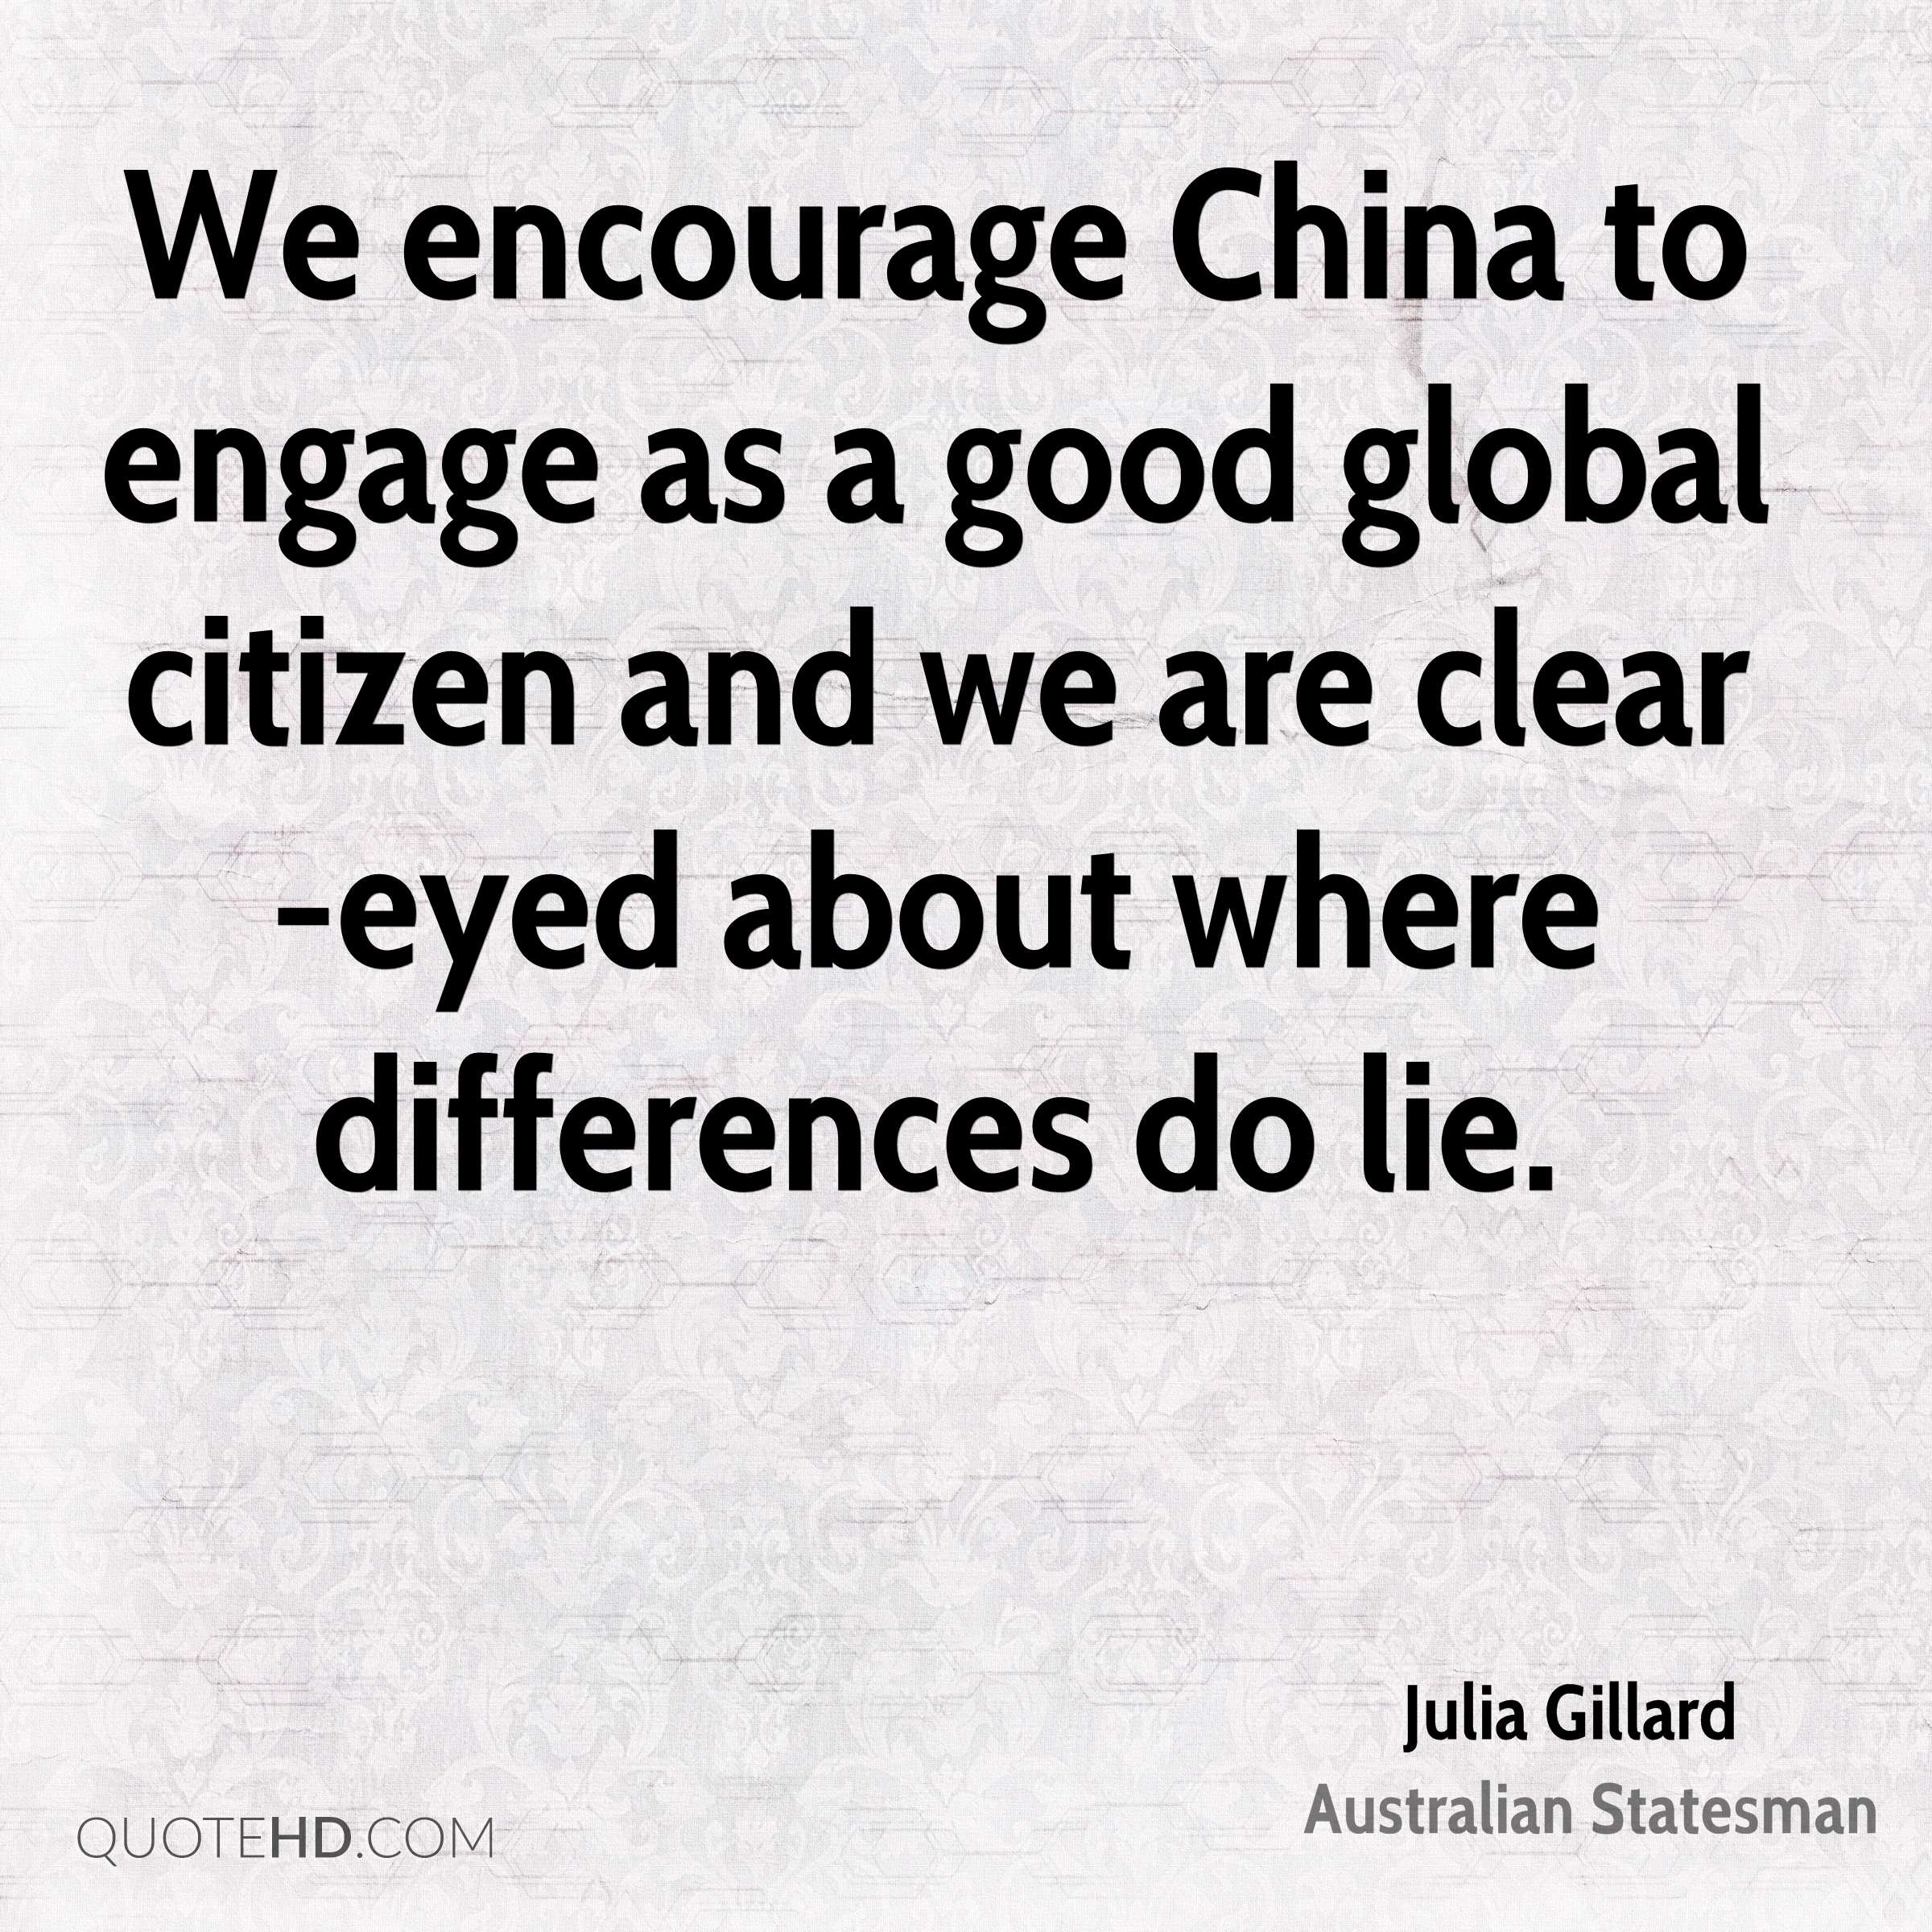 We encourage China to engage as a good global citizen and we are clear-eyed about where differences do lie.